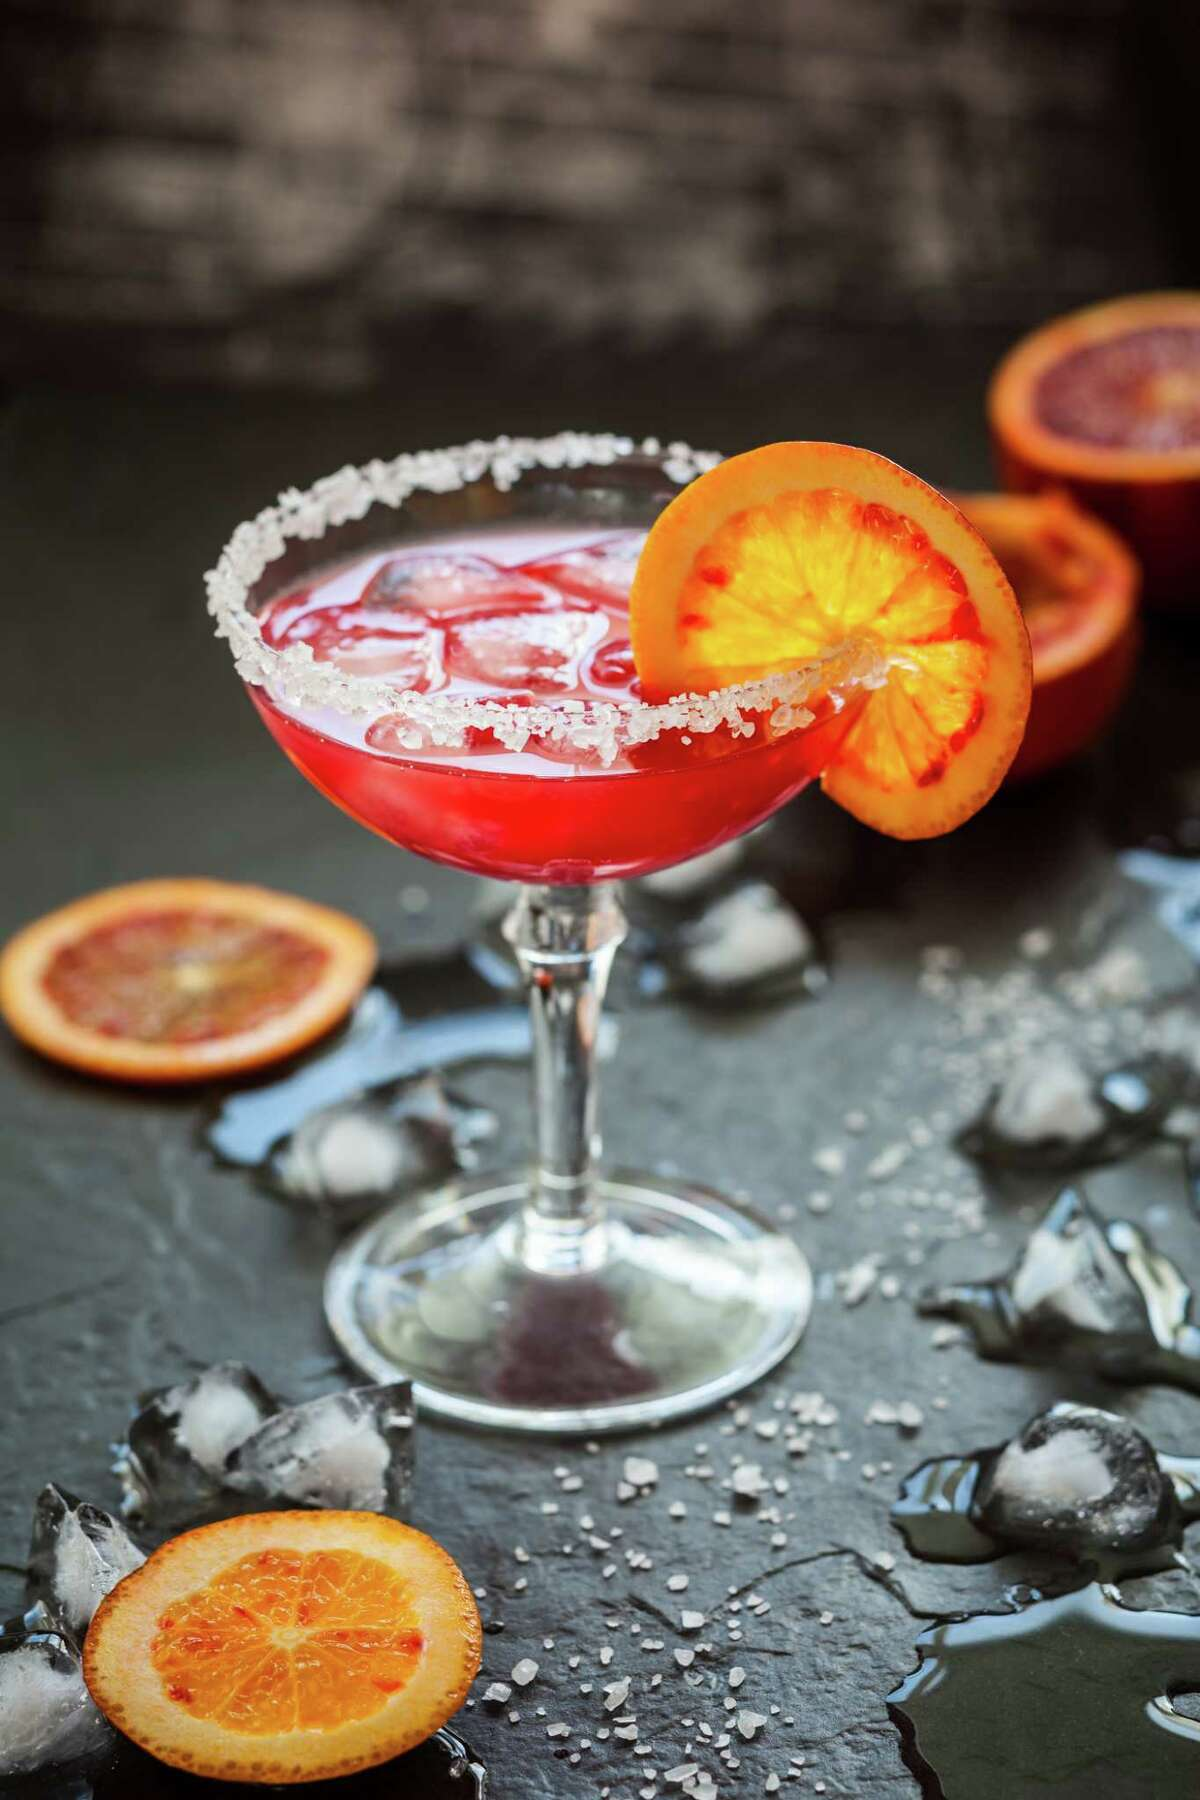 The Blood Orange Margarita is made with Corralejo Reposado Tequila.